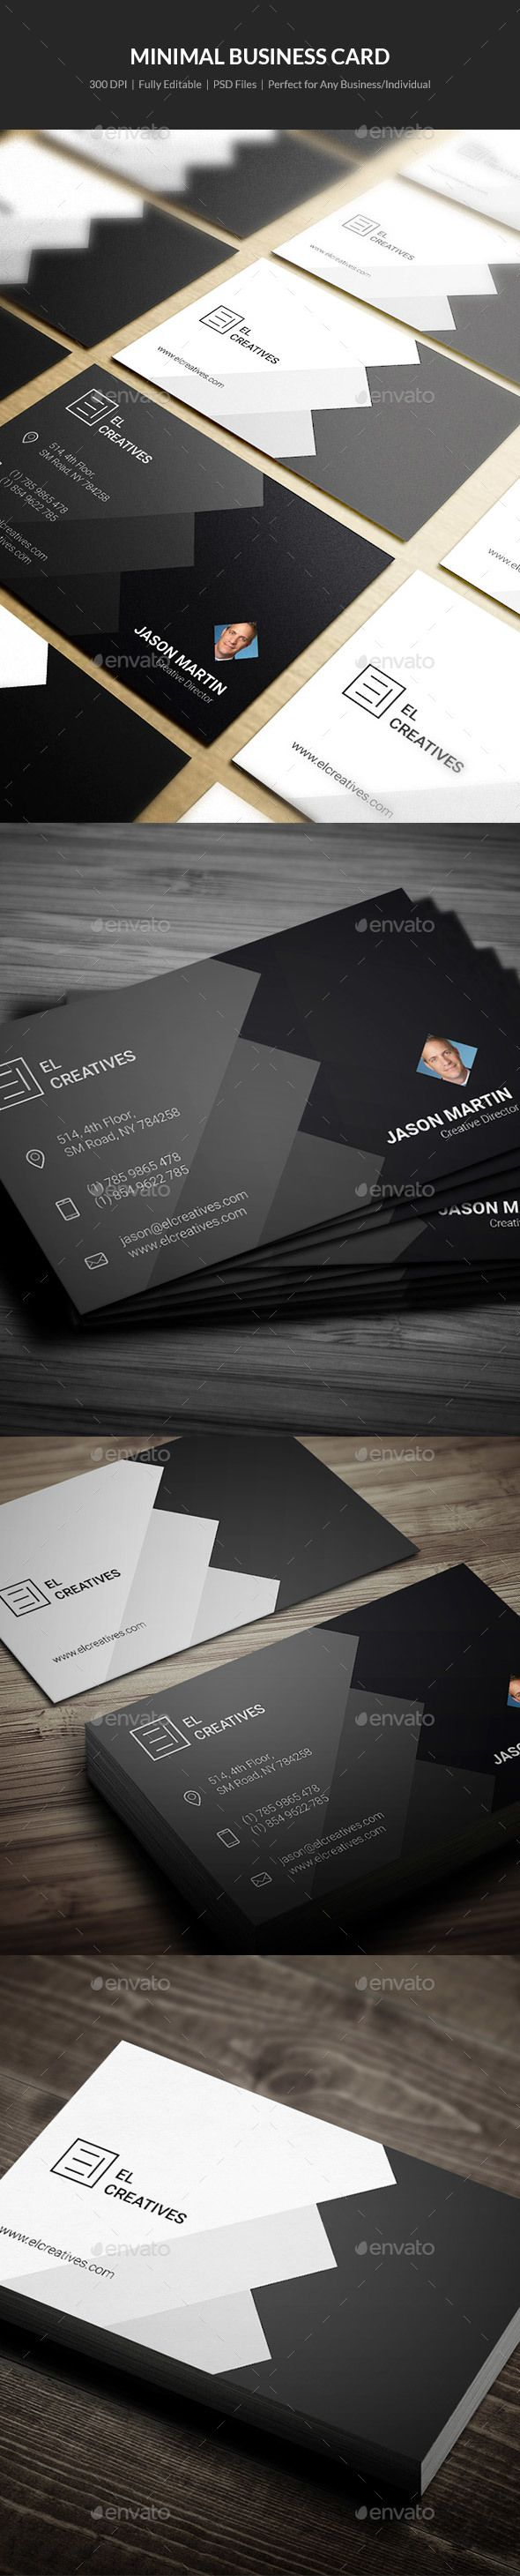 Best 25 minimal business card ideas on pinterest business card minimal business card 01 magicingreecefo Image collections